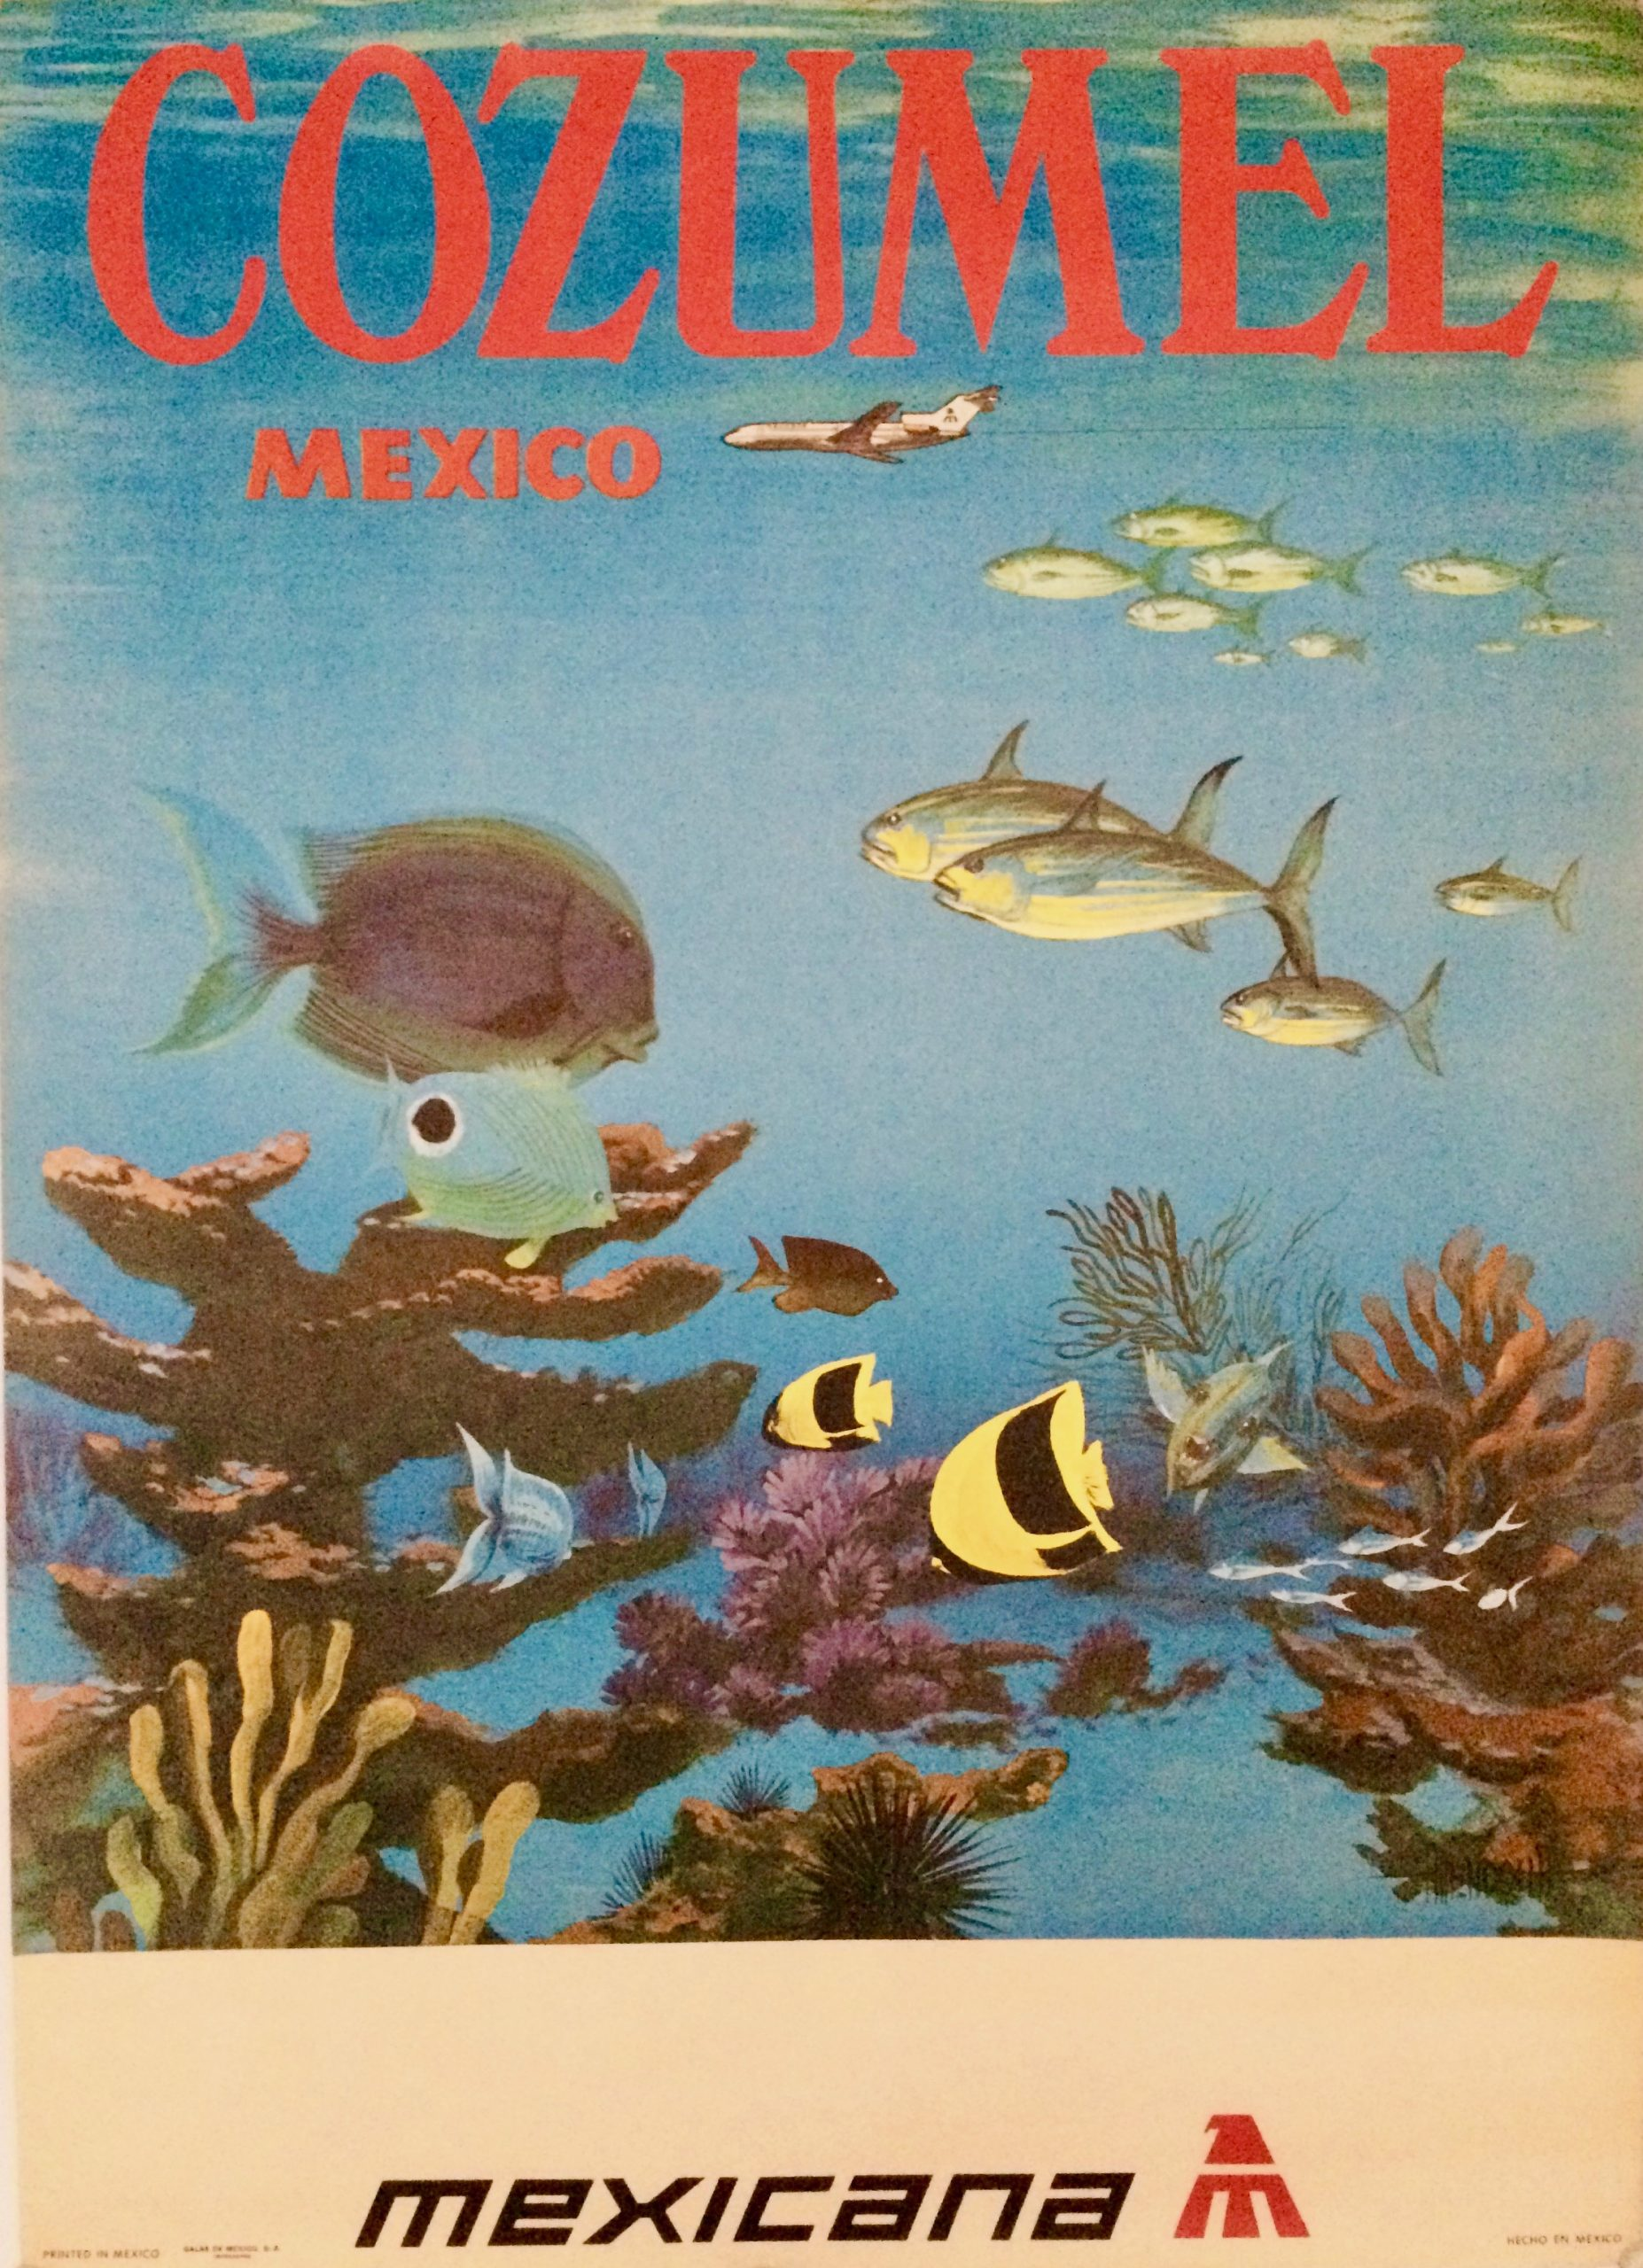 Vintage poster for Cozumel